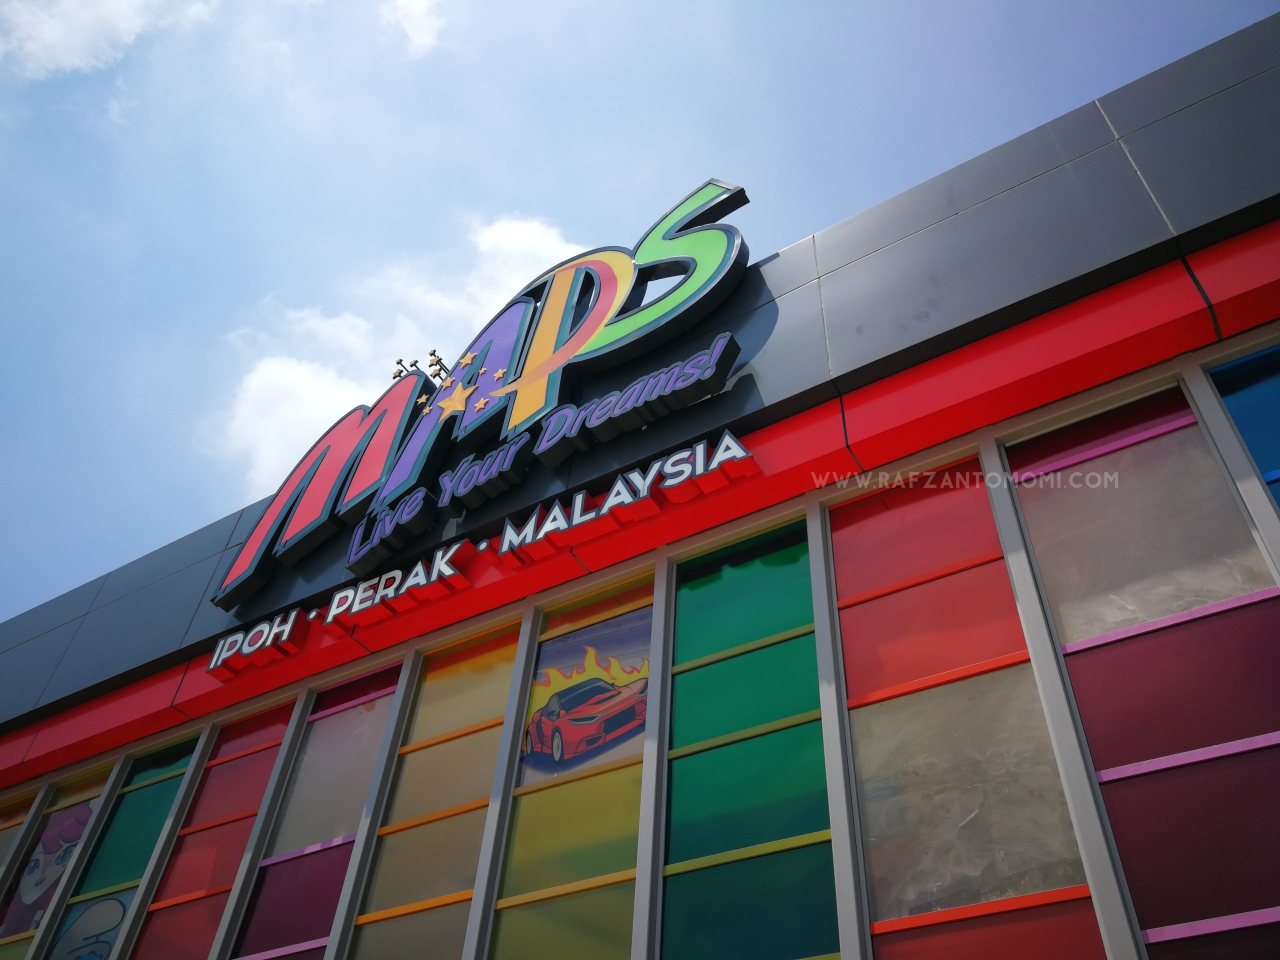 Movie Animation Park Studio MAPS Perak Review 2018